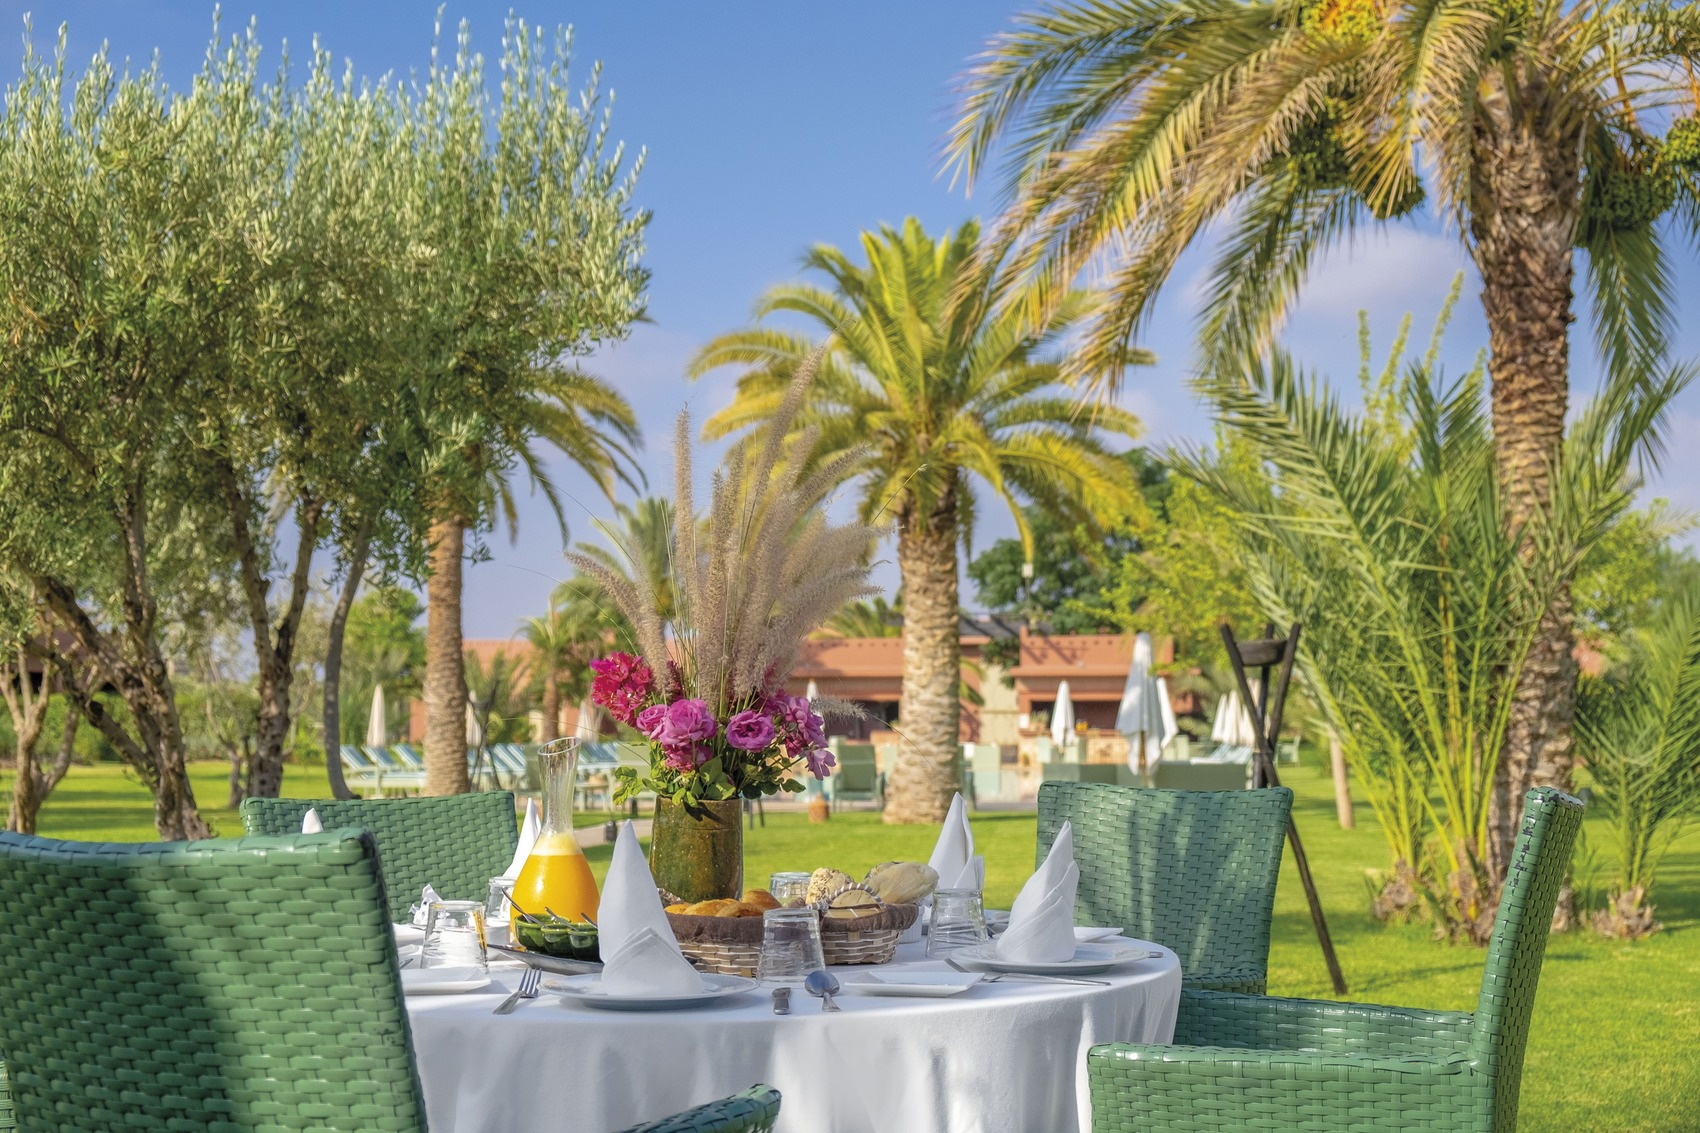 Luxury boutique hotel 5 stars Palmeraie Marrakesh Morocco Domaine des Remparts - garden restaurant